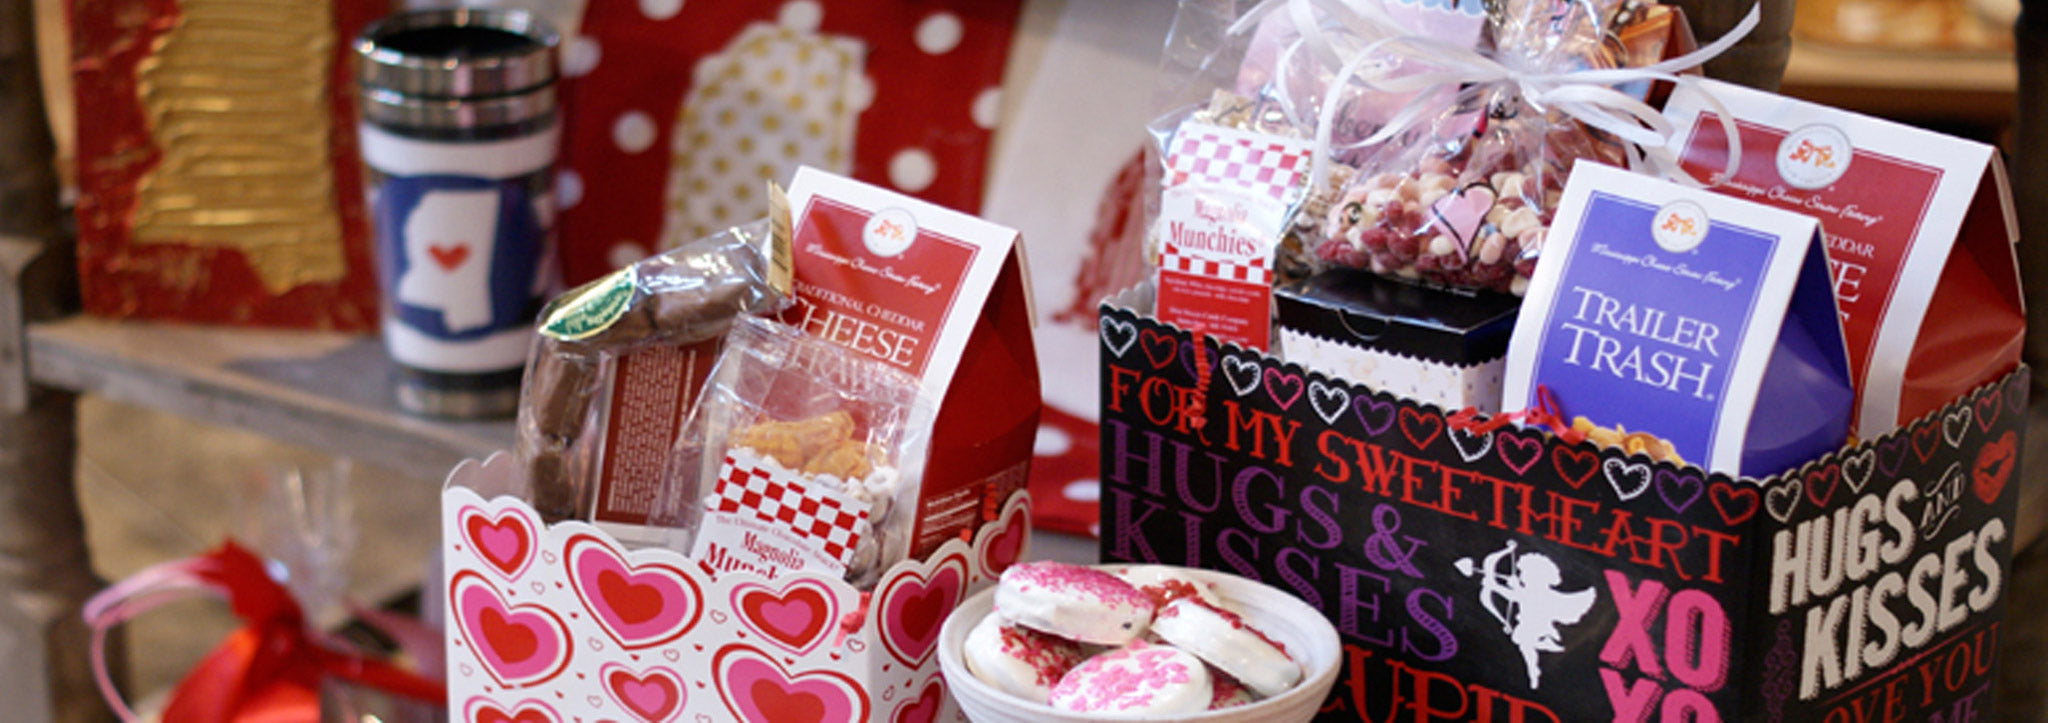 The Mississippi Gift Company Ms Made Foods Gifts And Home Decor